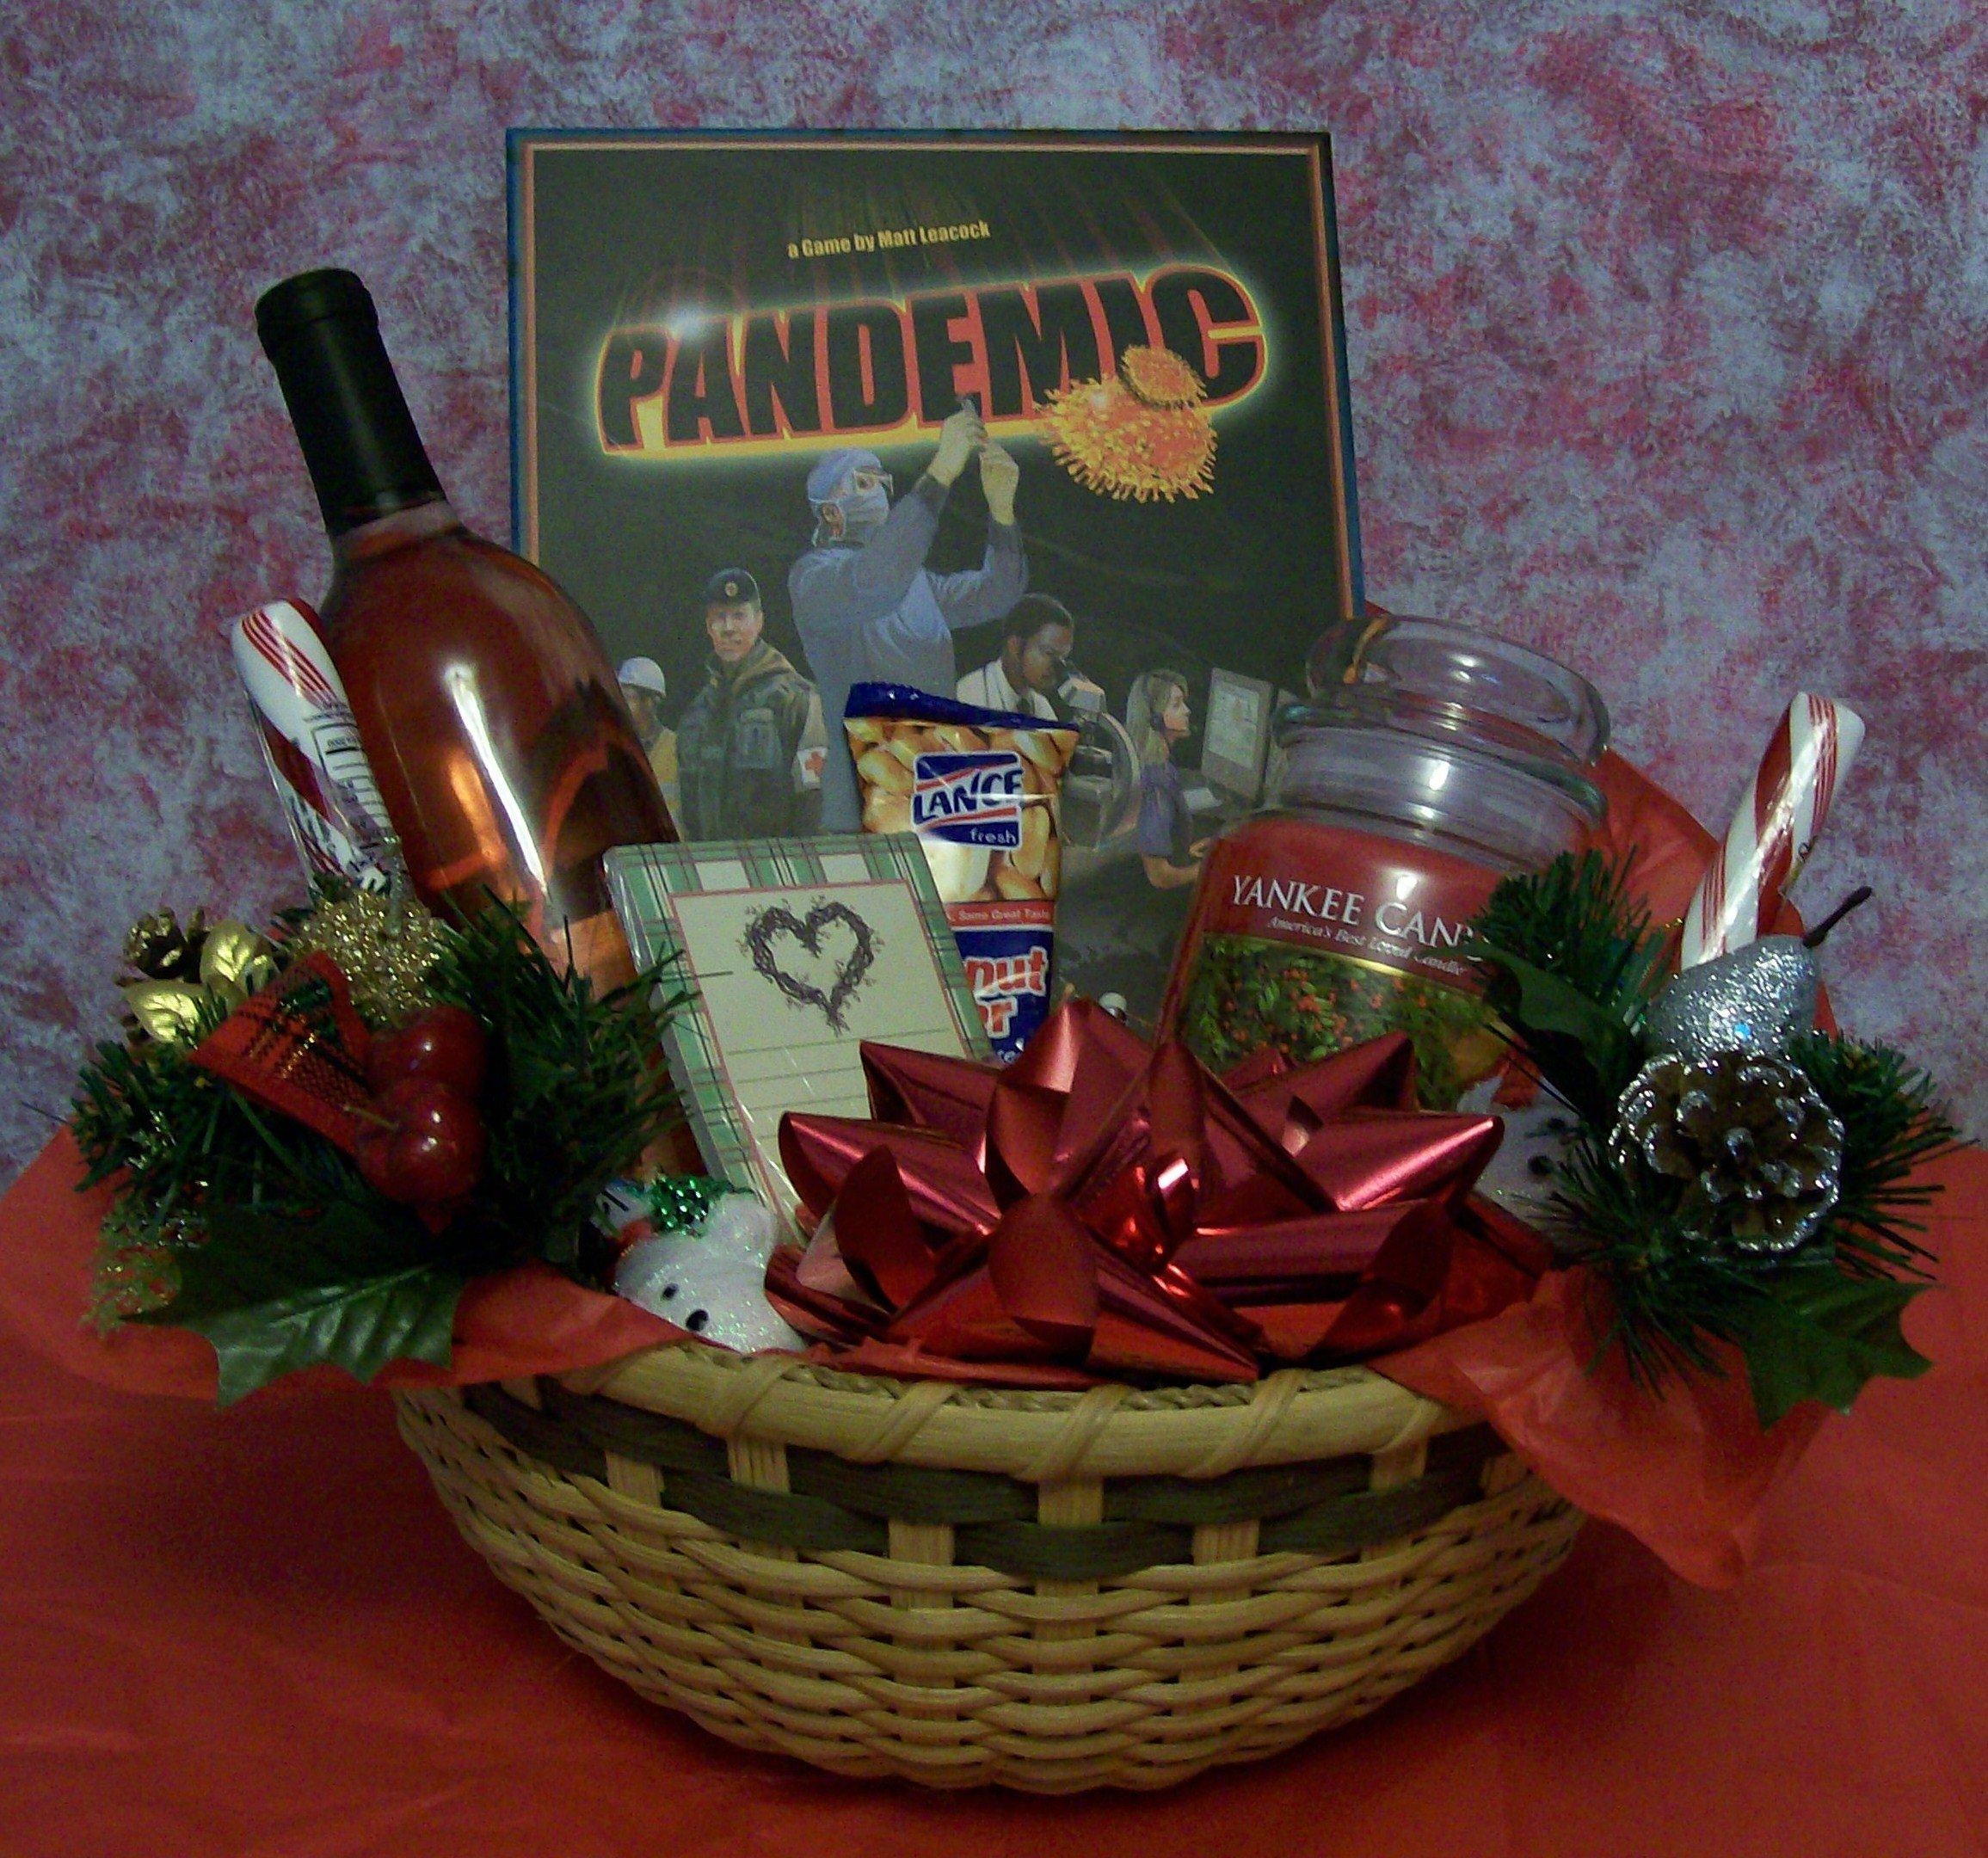 10 Great Family Gift Basket Ideas For Christmas ten best fun and games gift baskets for christmas all about fun 2020